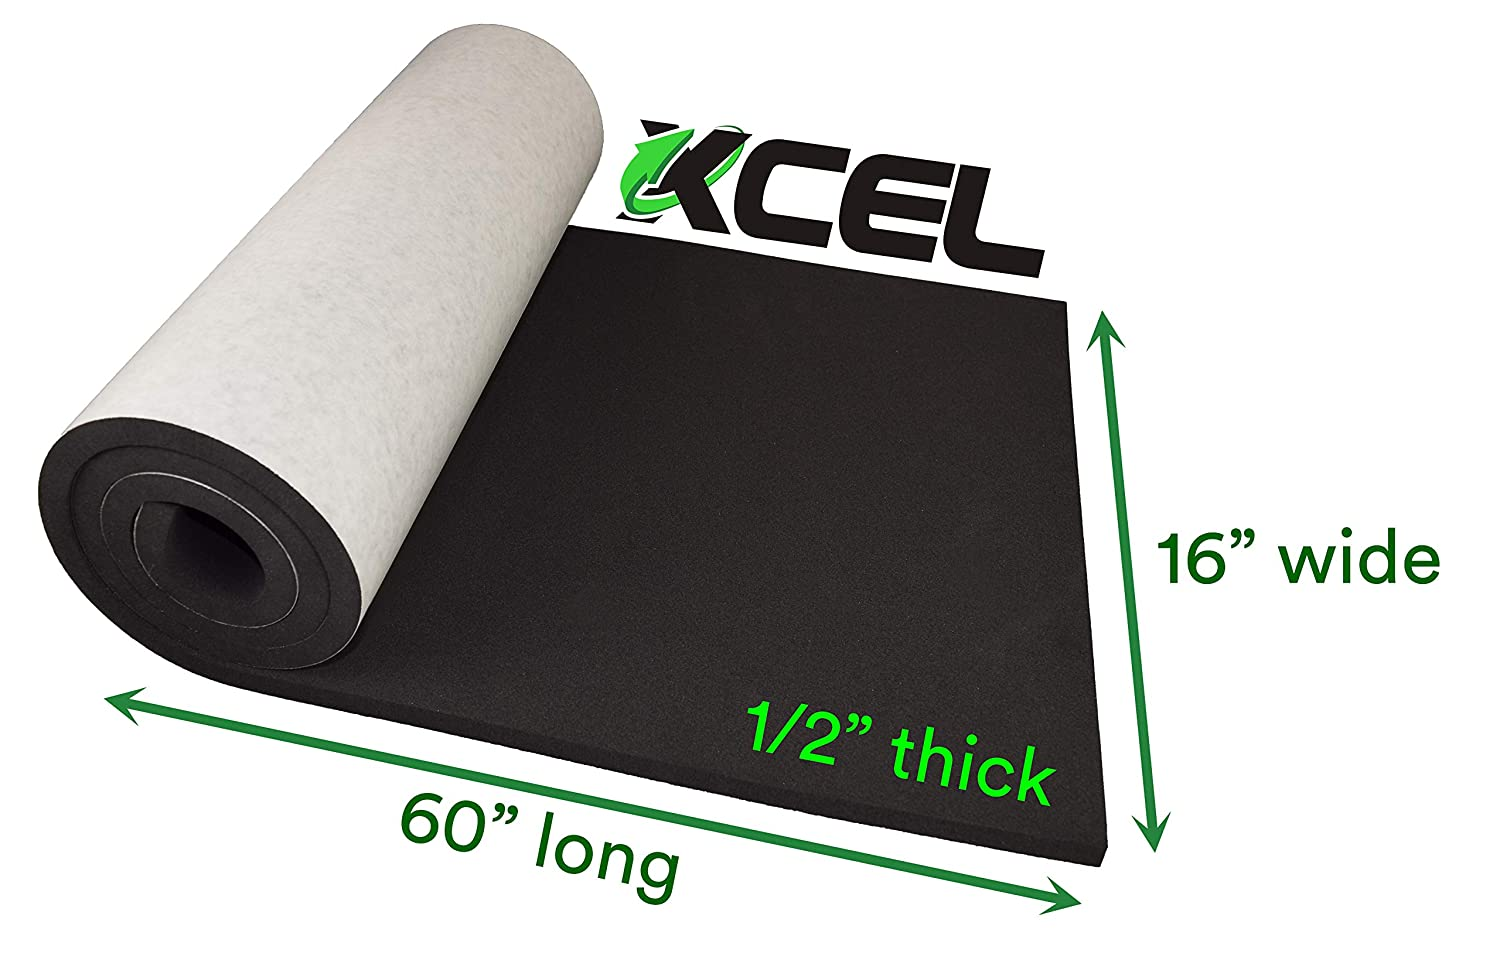 Water and Weather Resistant Size 60 X 16 X 1//2 XCEL Extra Large Marine Roll Closed Cell Neoprene Rubber with Adhesive Easy Cut Material Made in USA